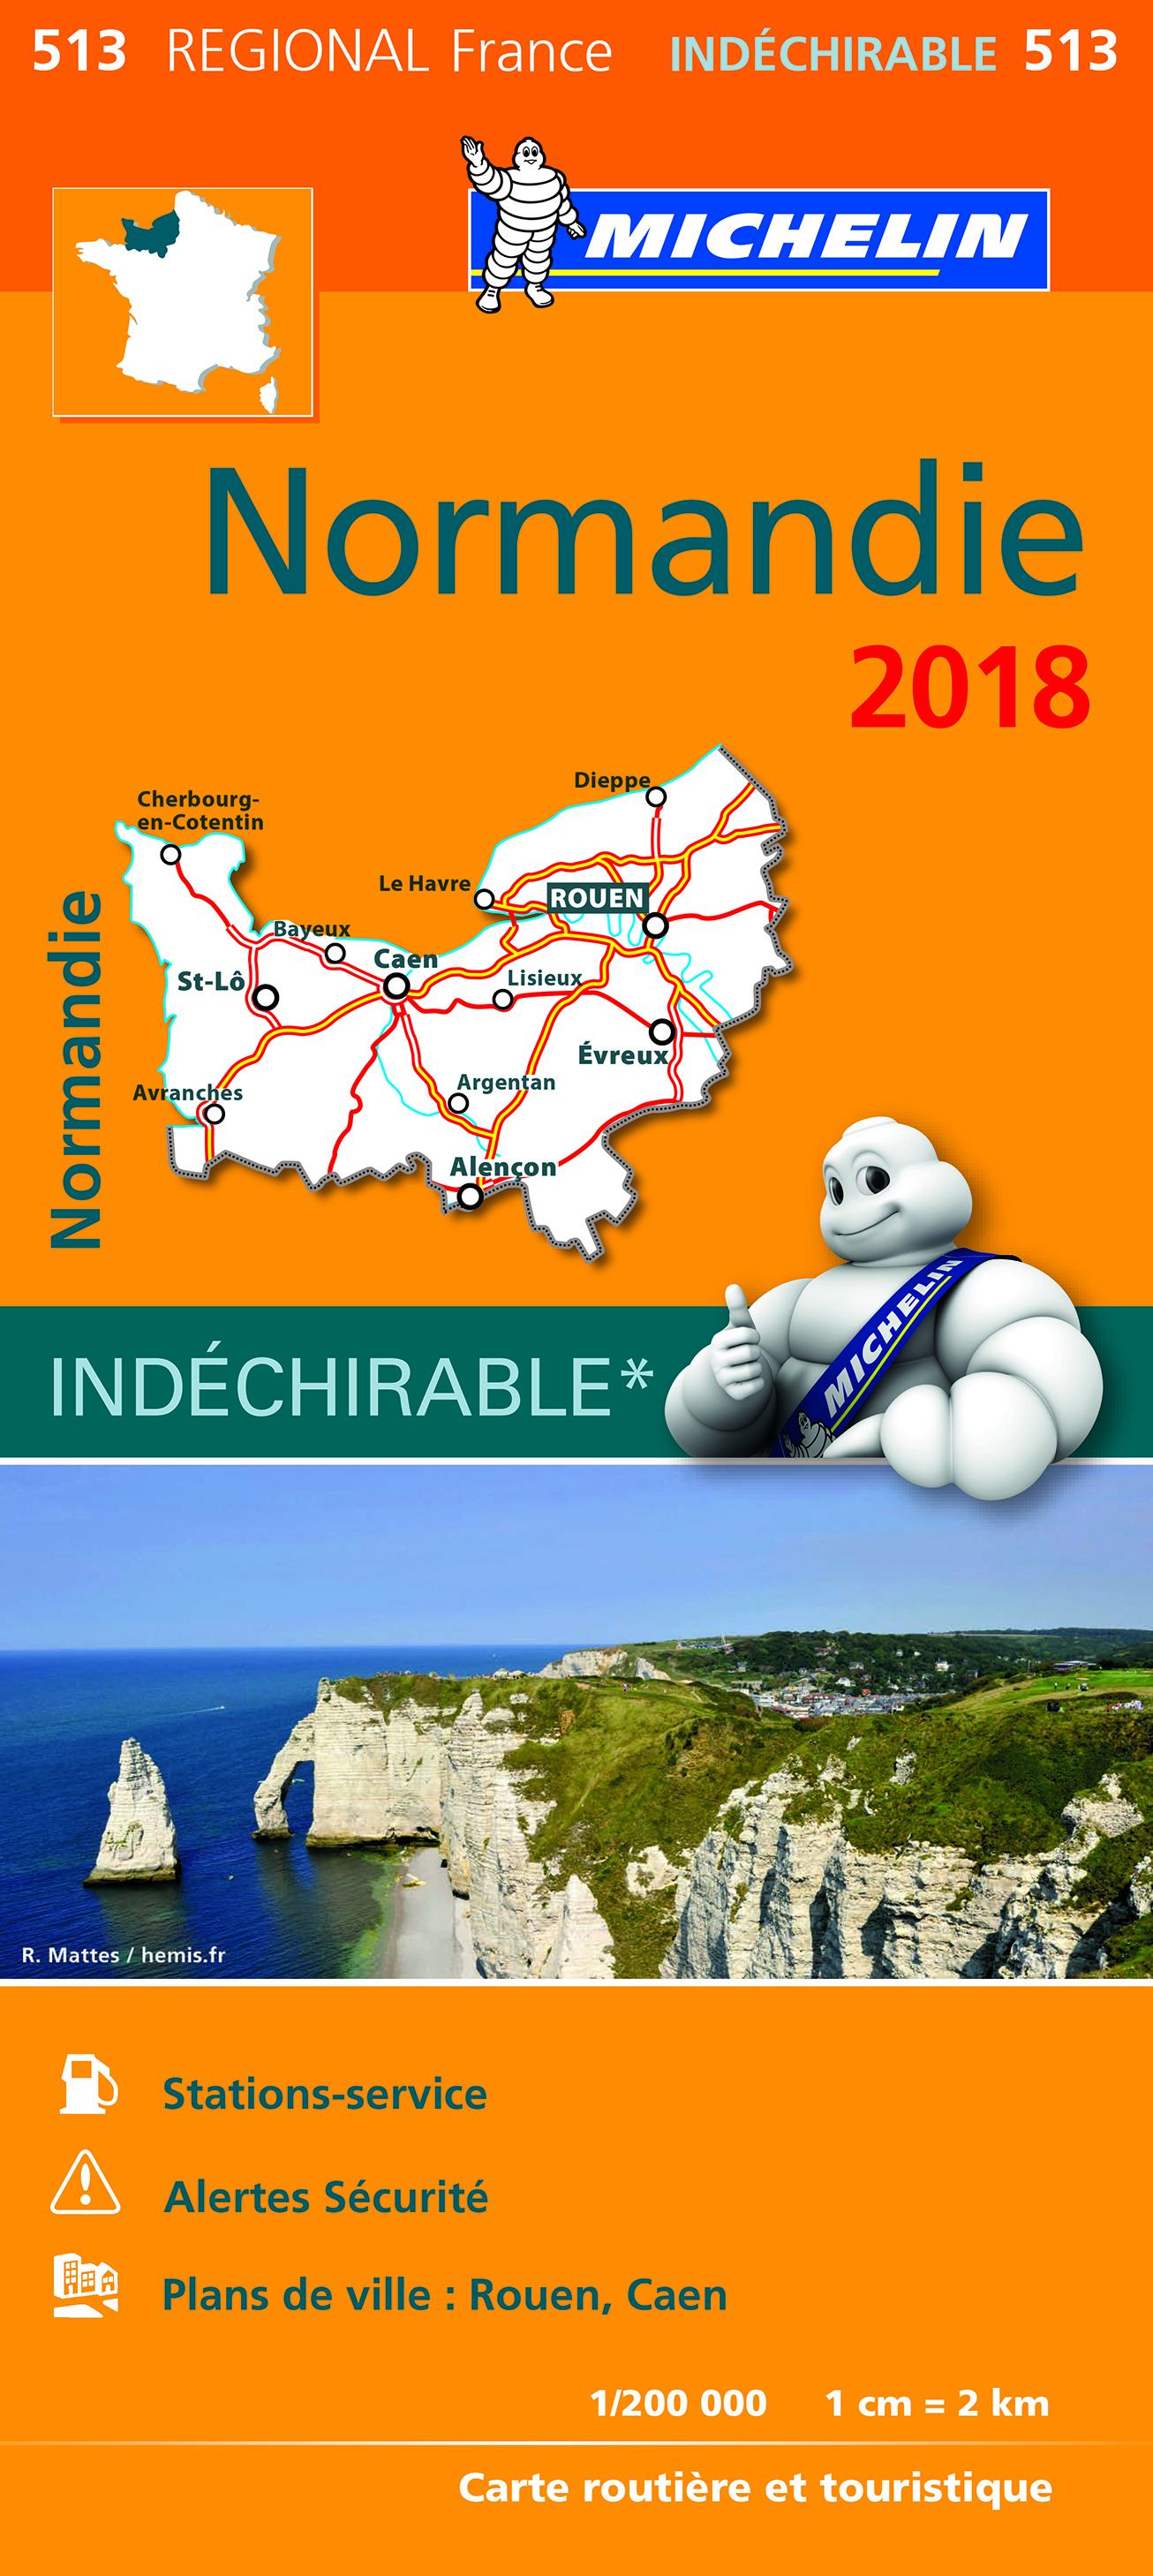 CARTE REGIONALE 513 NORMANDIE 2018